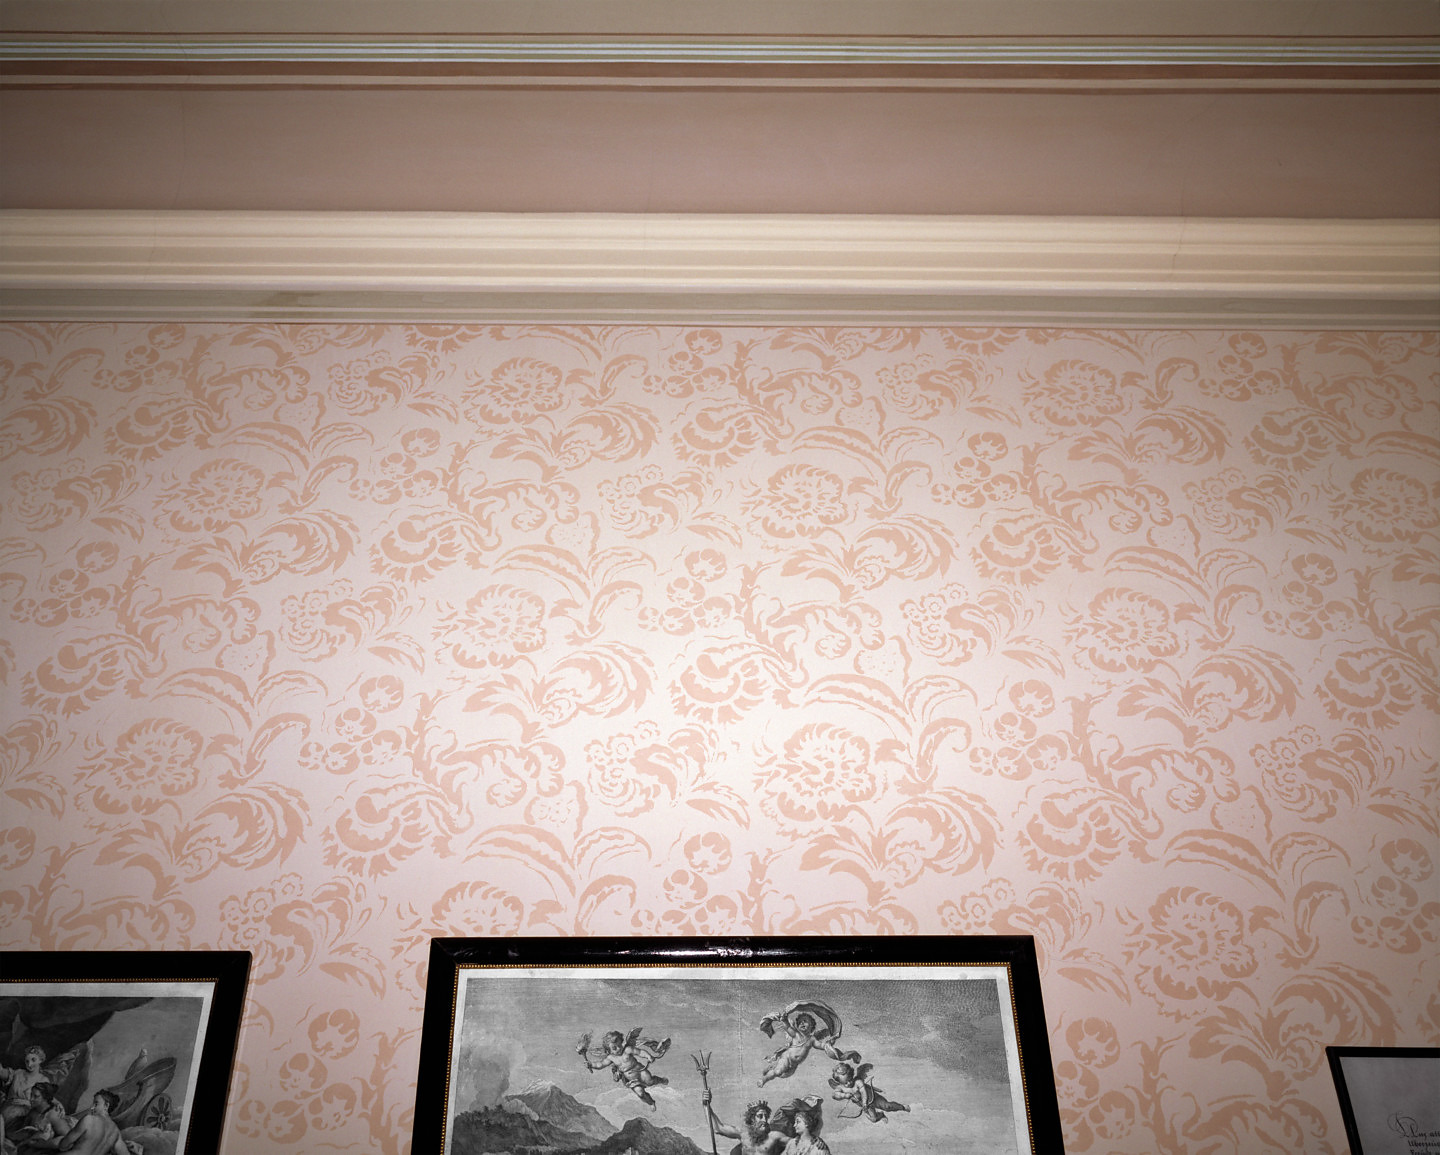 Above Sigmund Freud's couch 40×50″ archival pigment print 2008